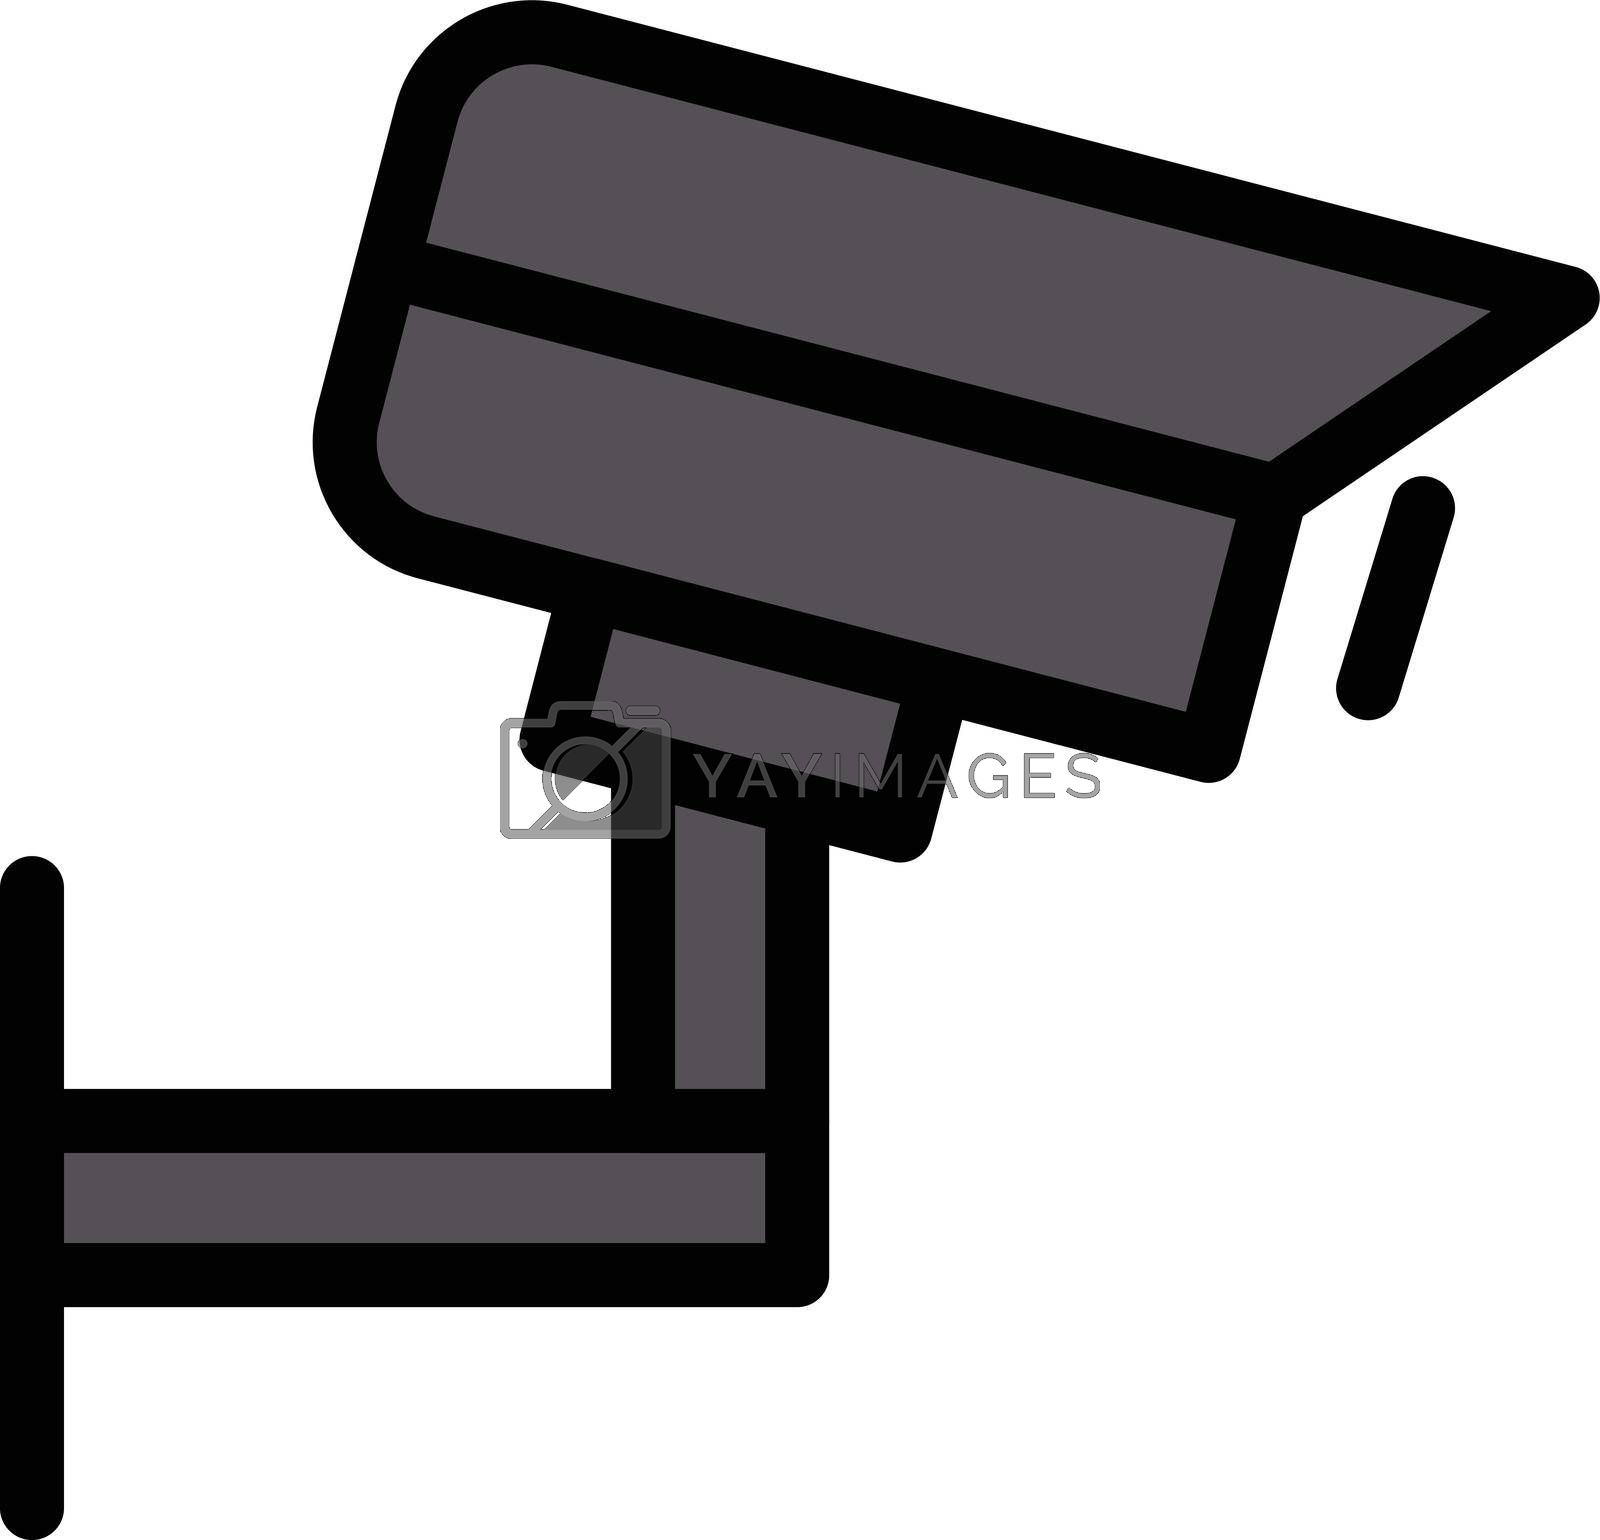 Royalty free image of CCTV by vectorstall